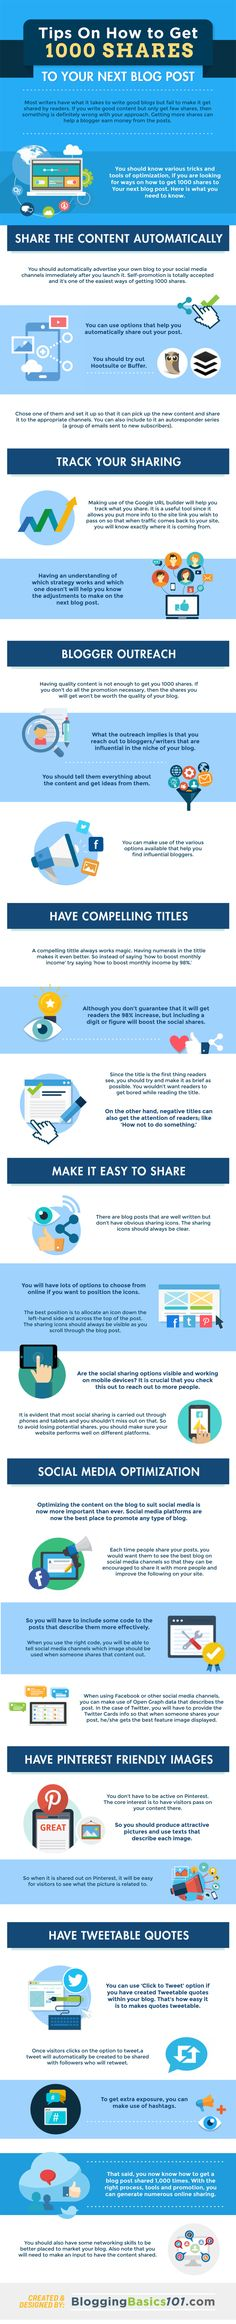 How to Get 1000 Shares on Your Next Blog Post [Infographic] - @redwebdesign